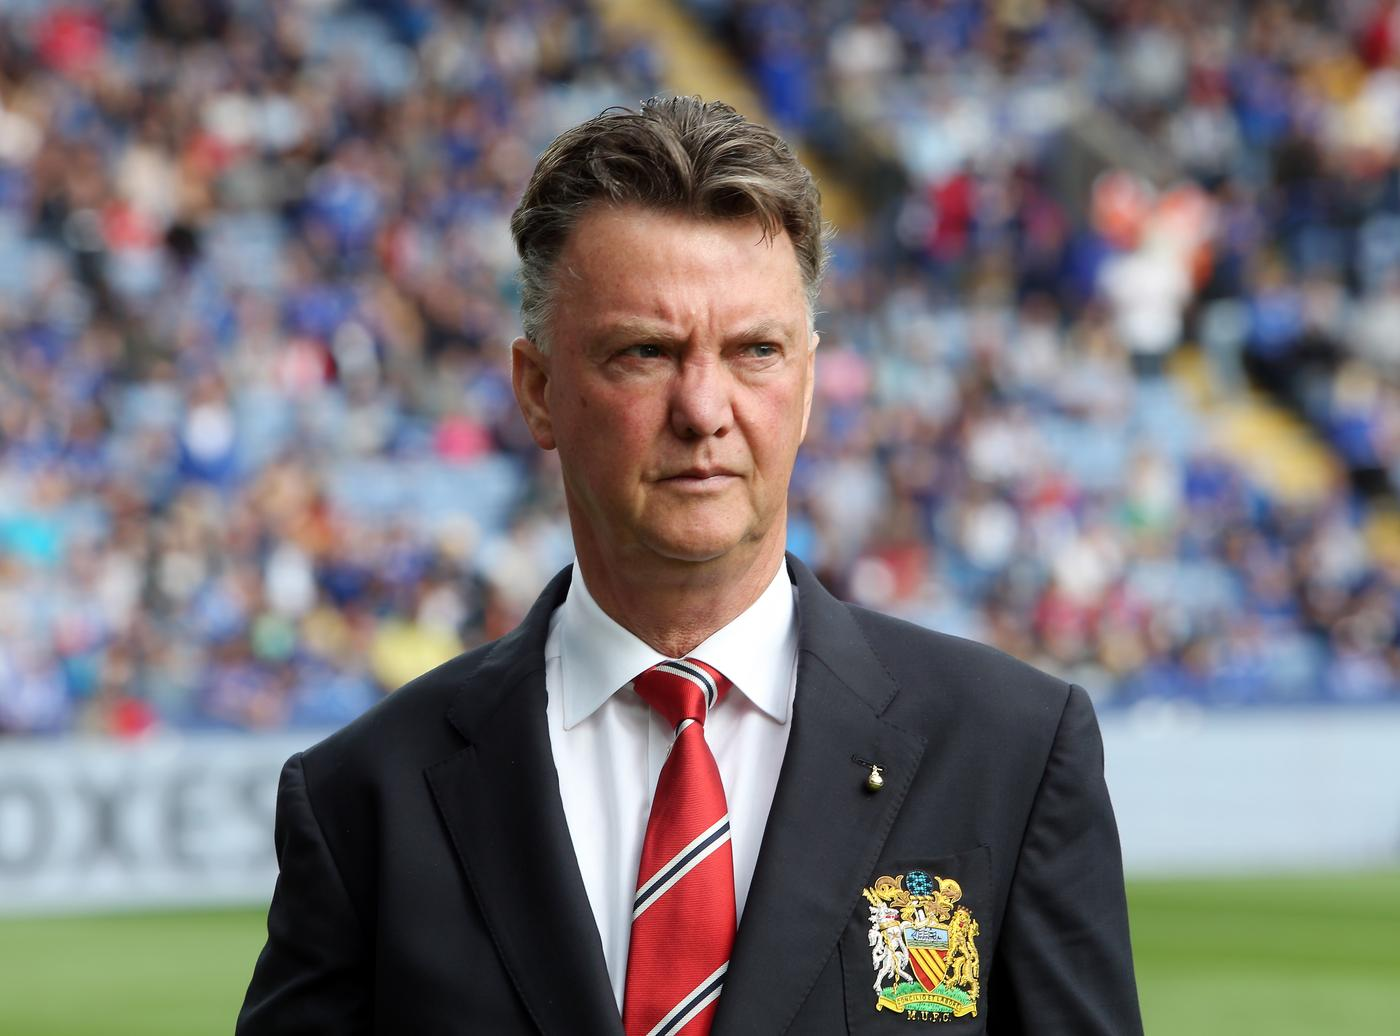 Louis van Gaal has wasted Manchester United's transfer budget, blasts Ruud Gullit